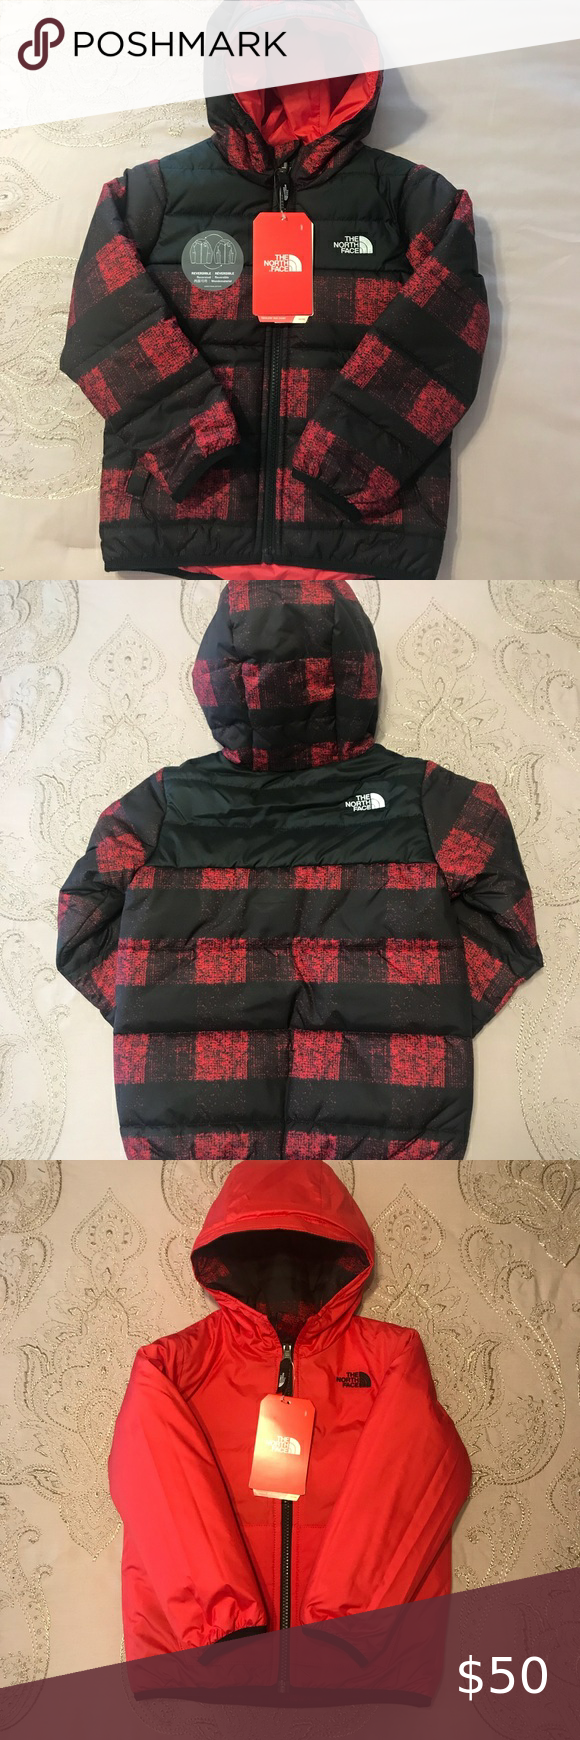 The North Face Little Boys Size 4treversible New In 2020 North Face Coat Outer Jacket The North Face [ 1740 x 580 Pixel ]